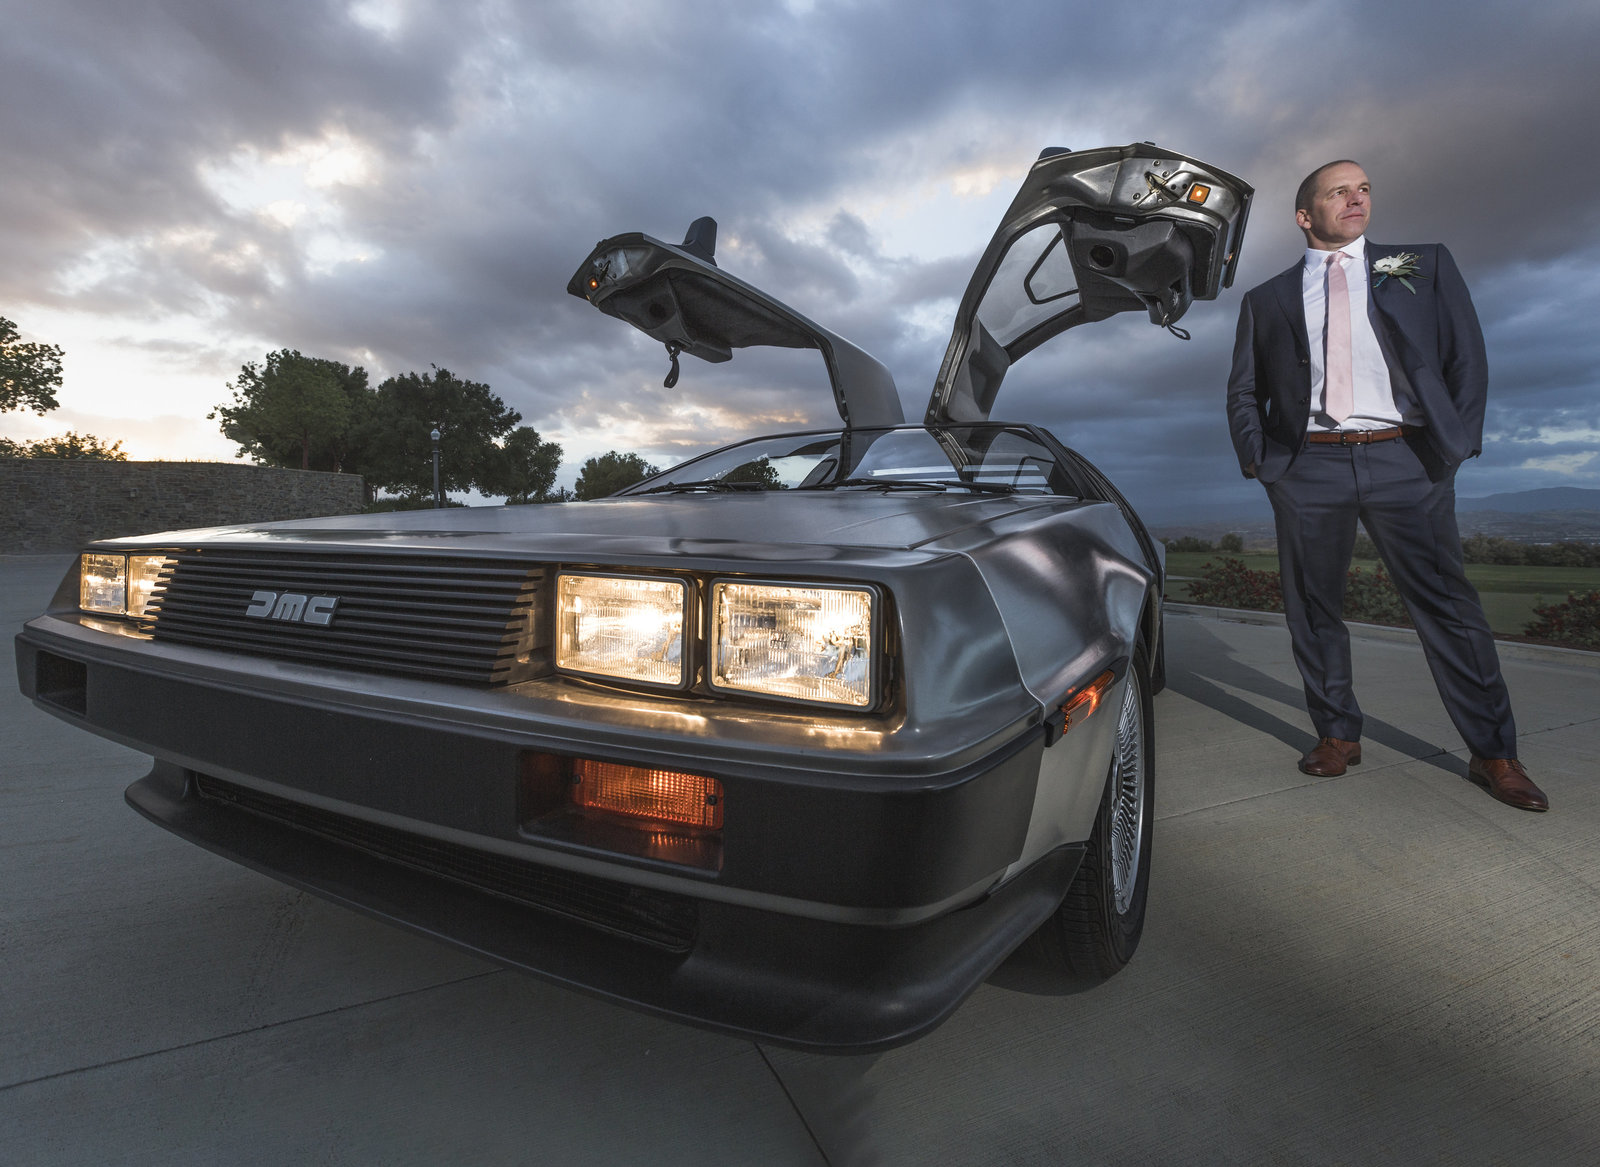 groom posing next to his gmc delorean.